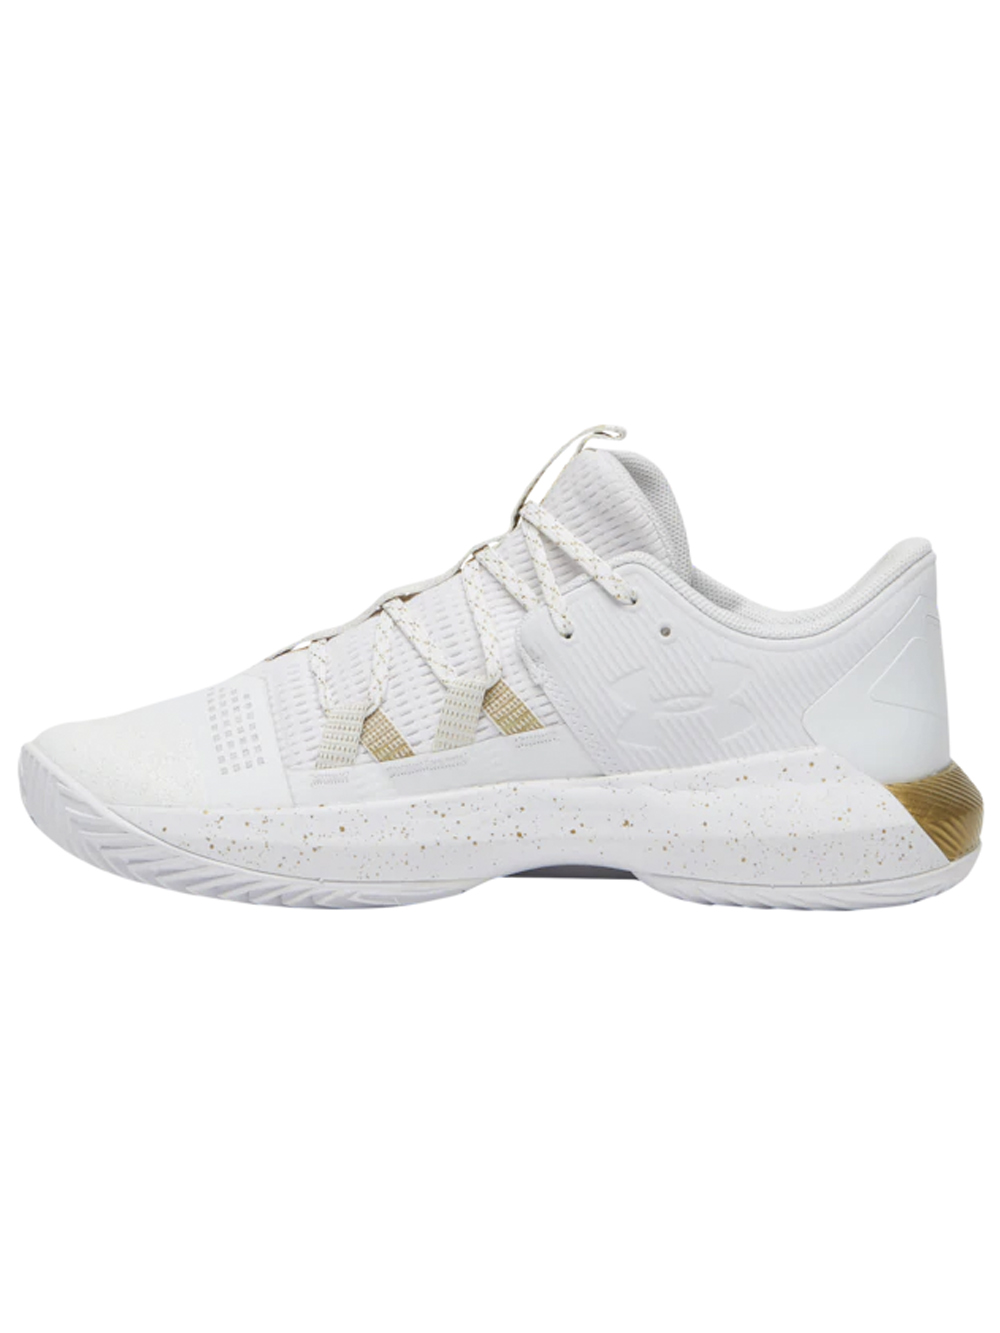 under armour volleyball shoes Online